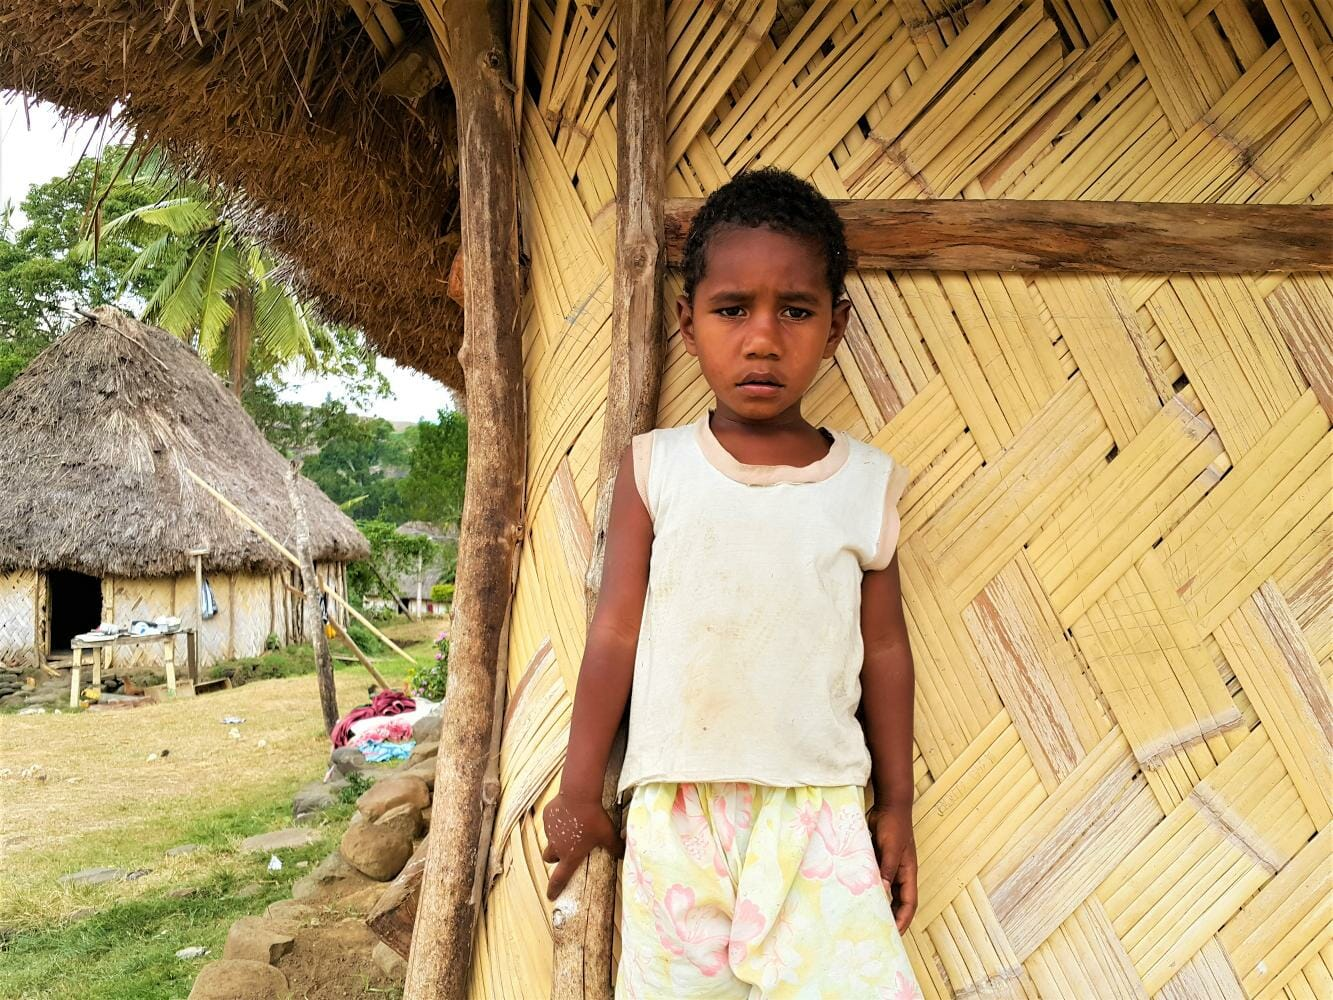 Meet the local Fijian kids in Navala Village on this private guided tour in Fiji